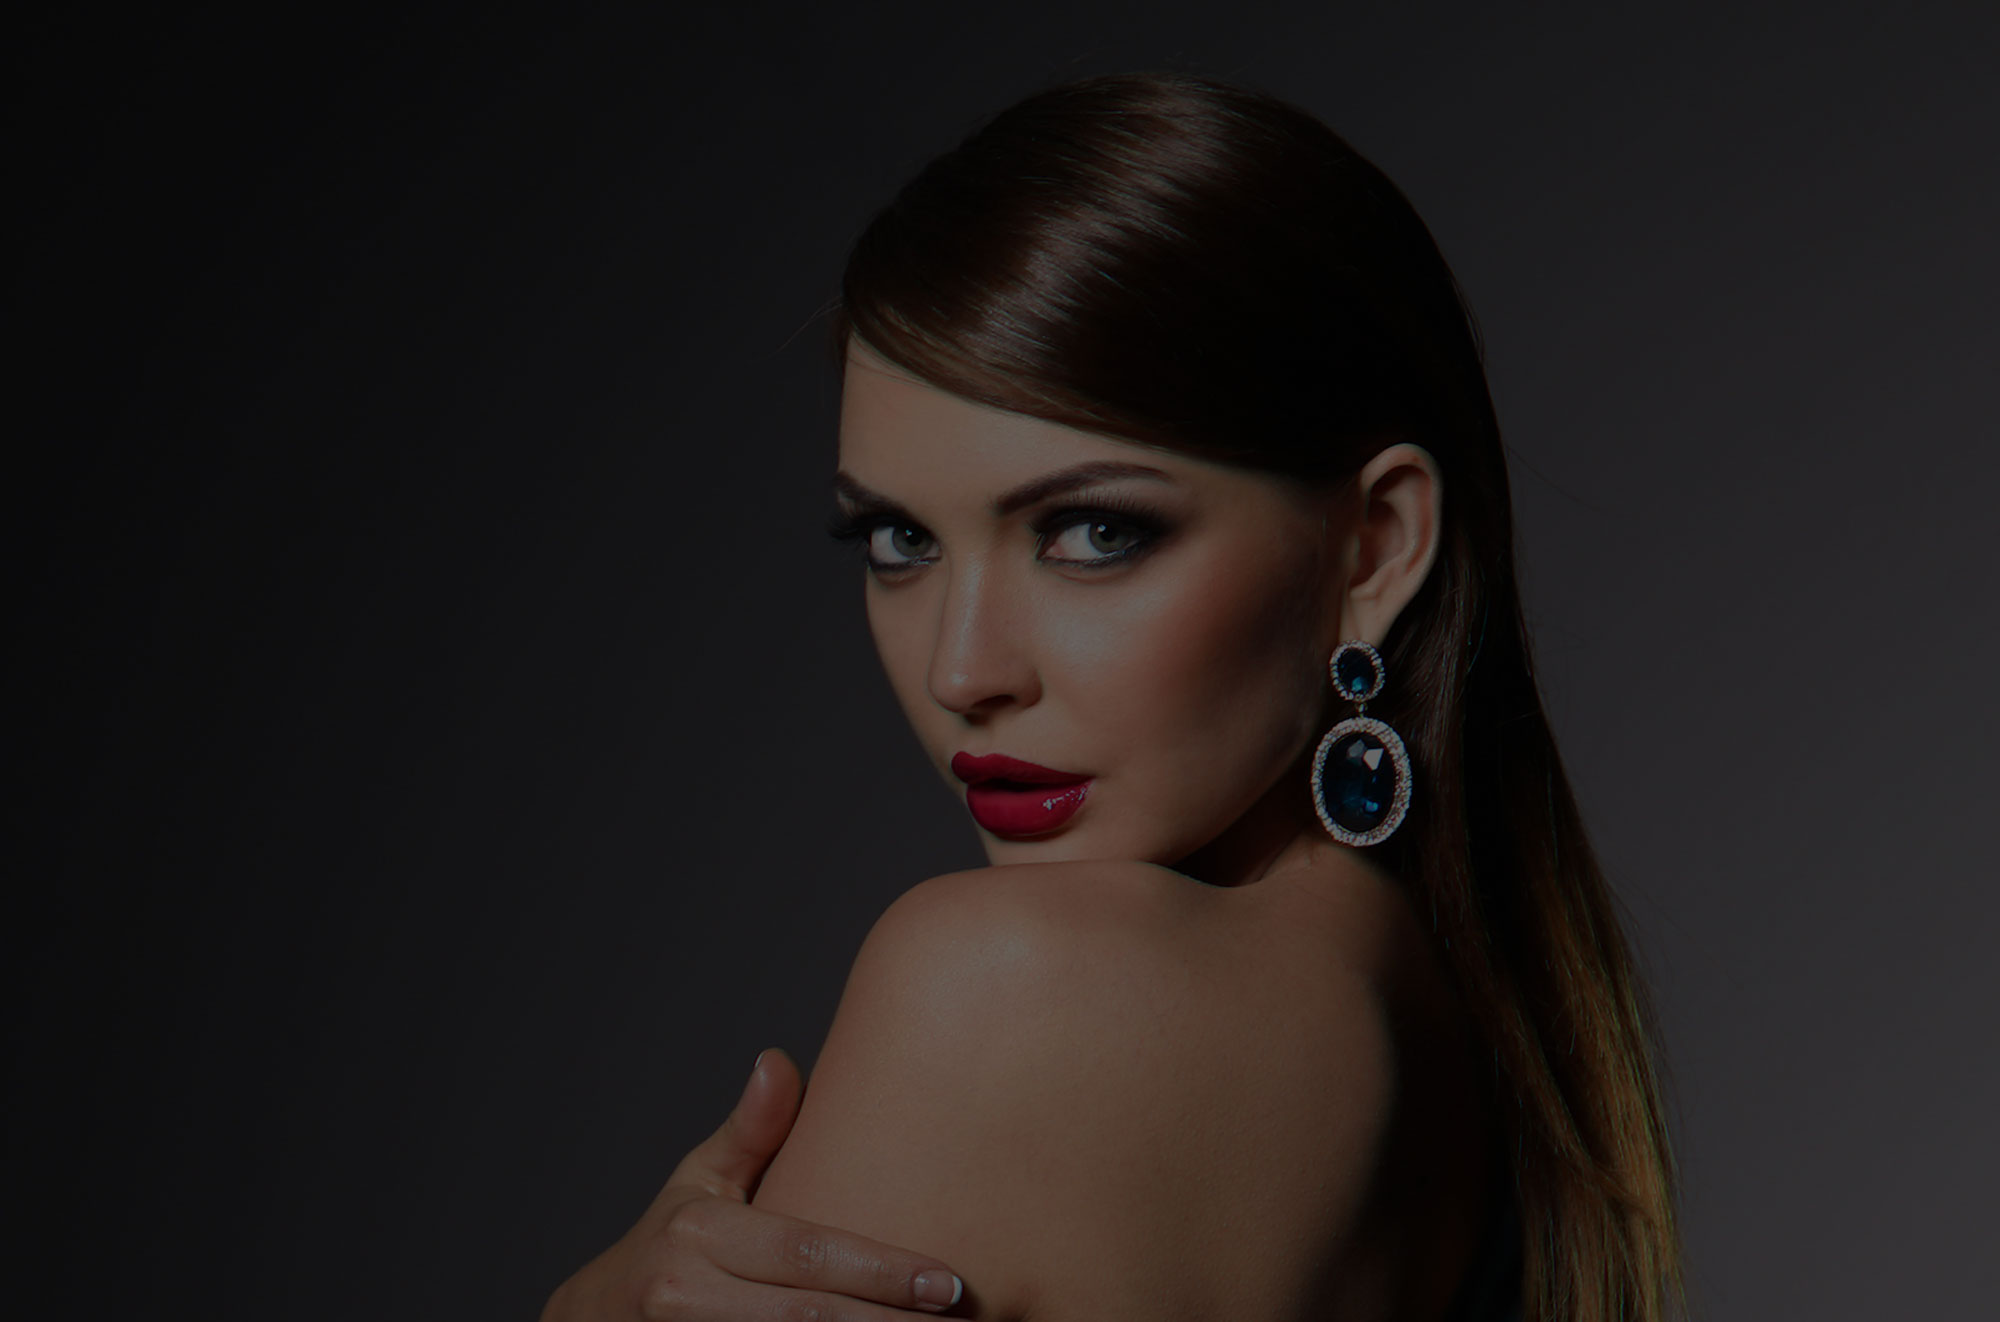 Beautiful woman wearing hair up and sapphire earring looking over her bare shoulder.